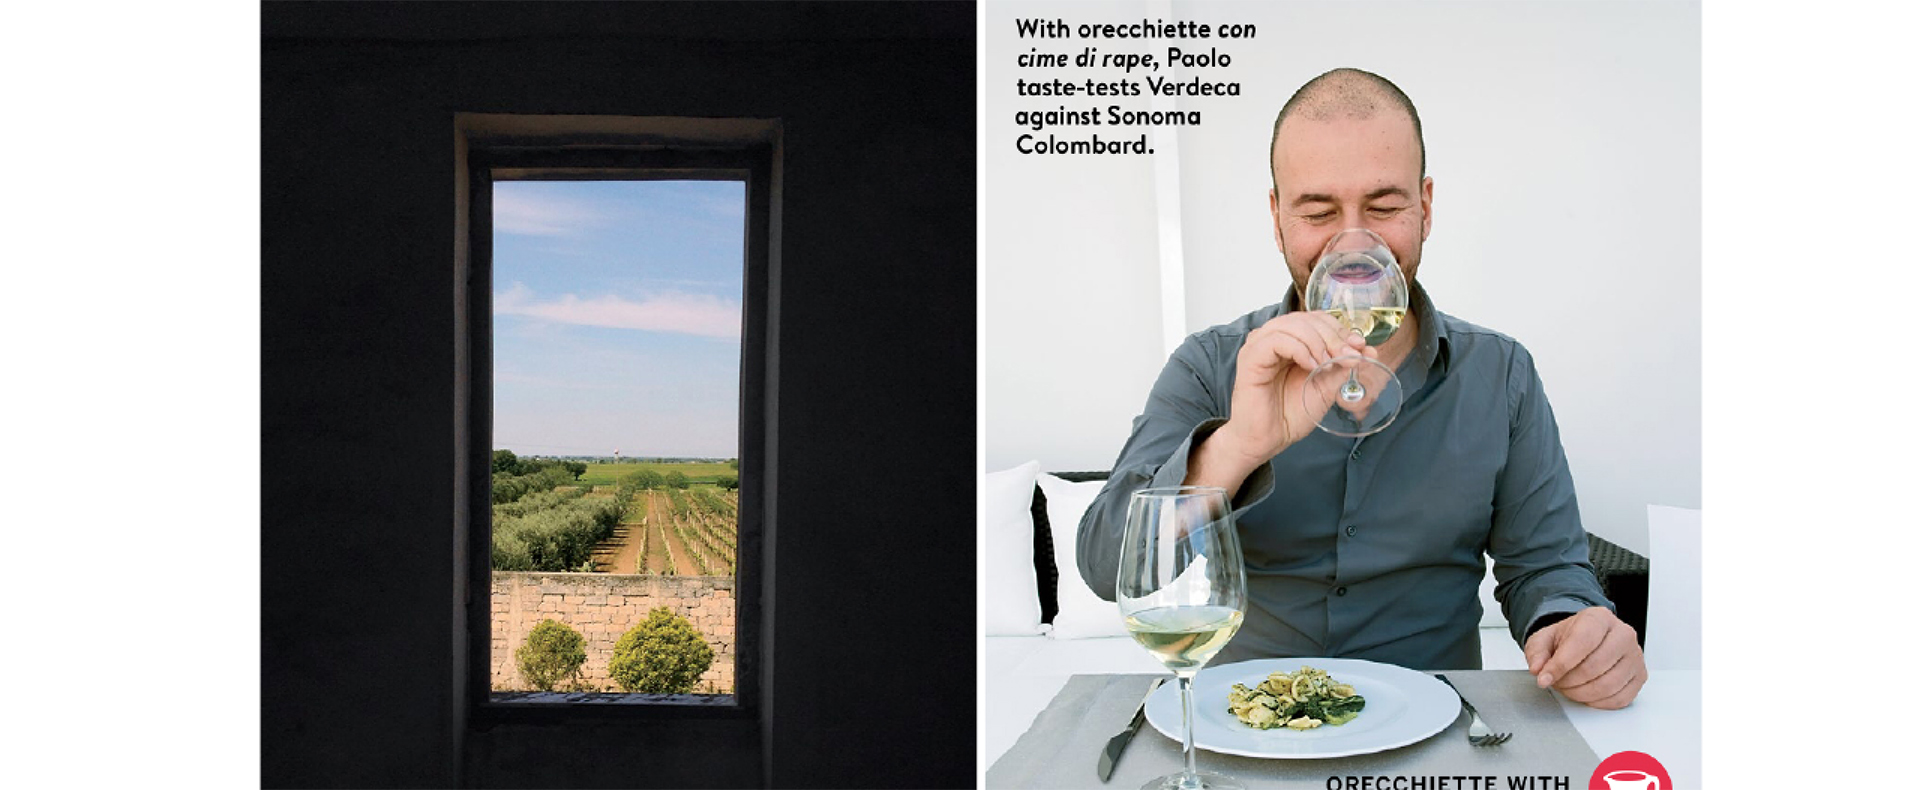 Paolo and Gianni featured in Food & Wine magazine